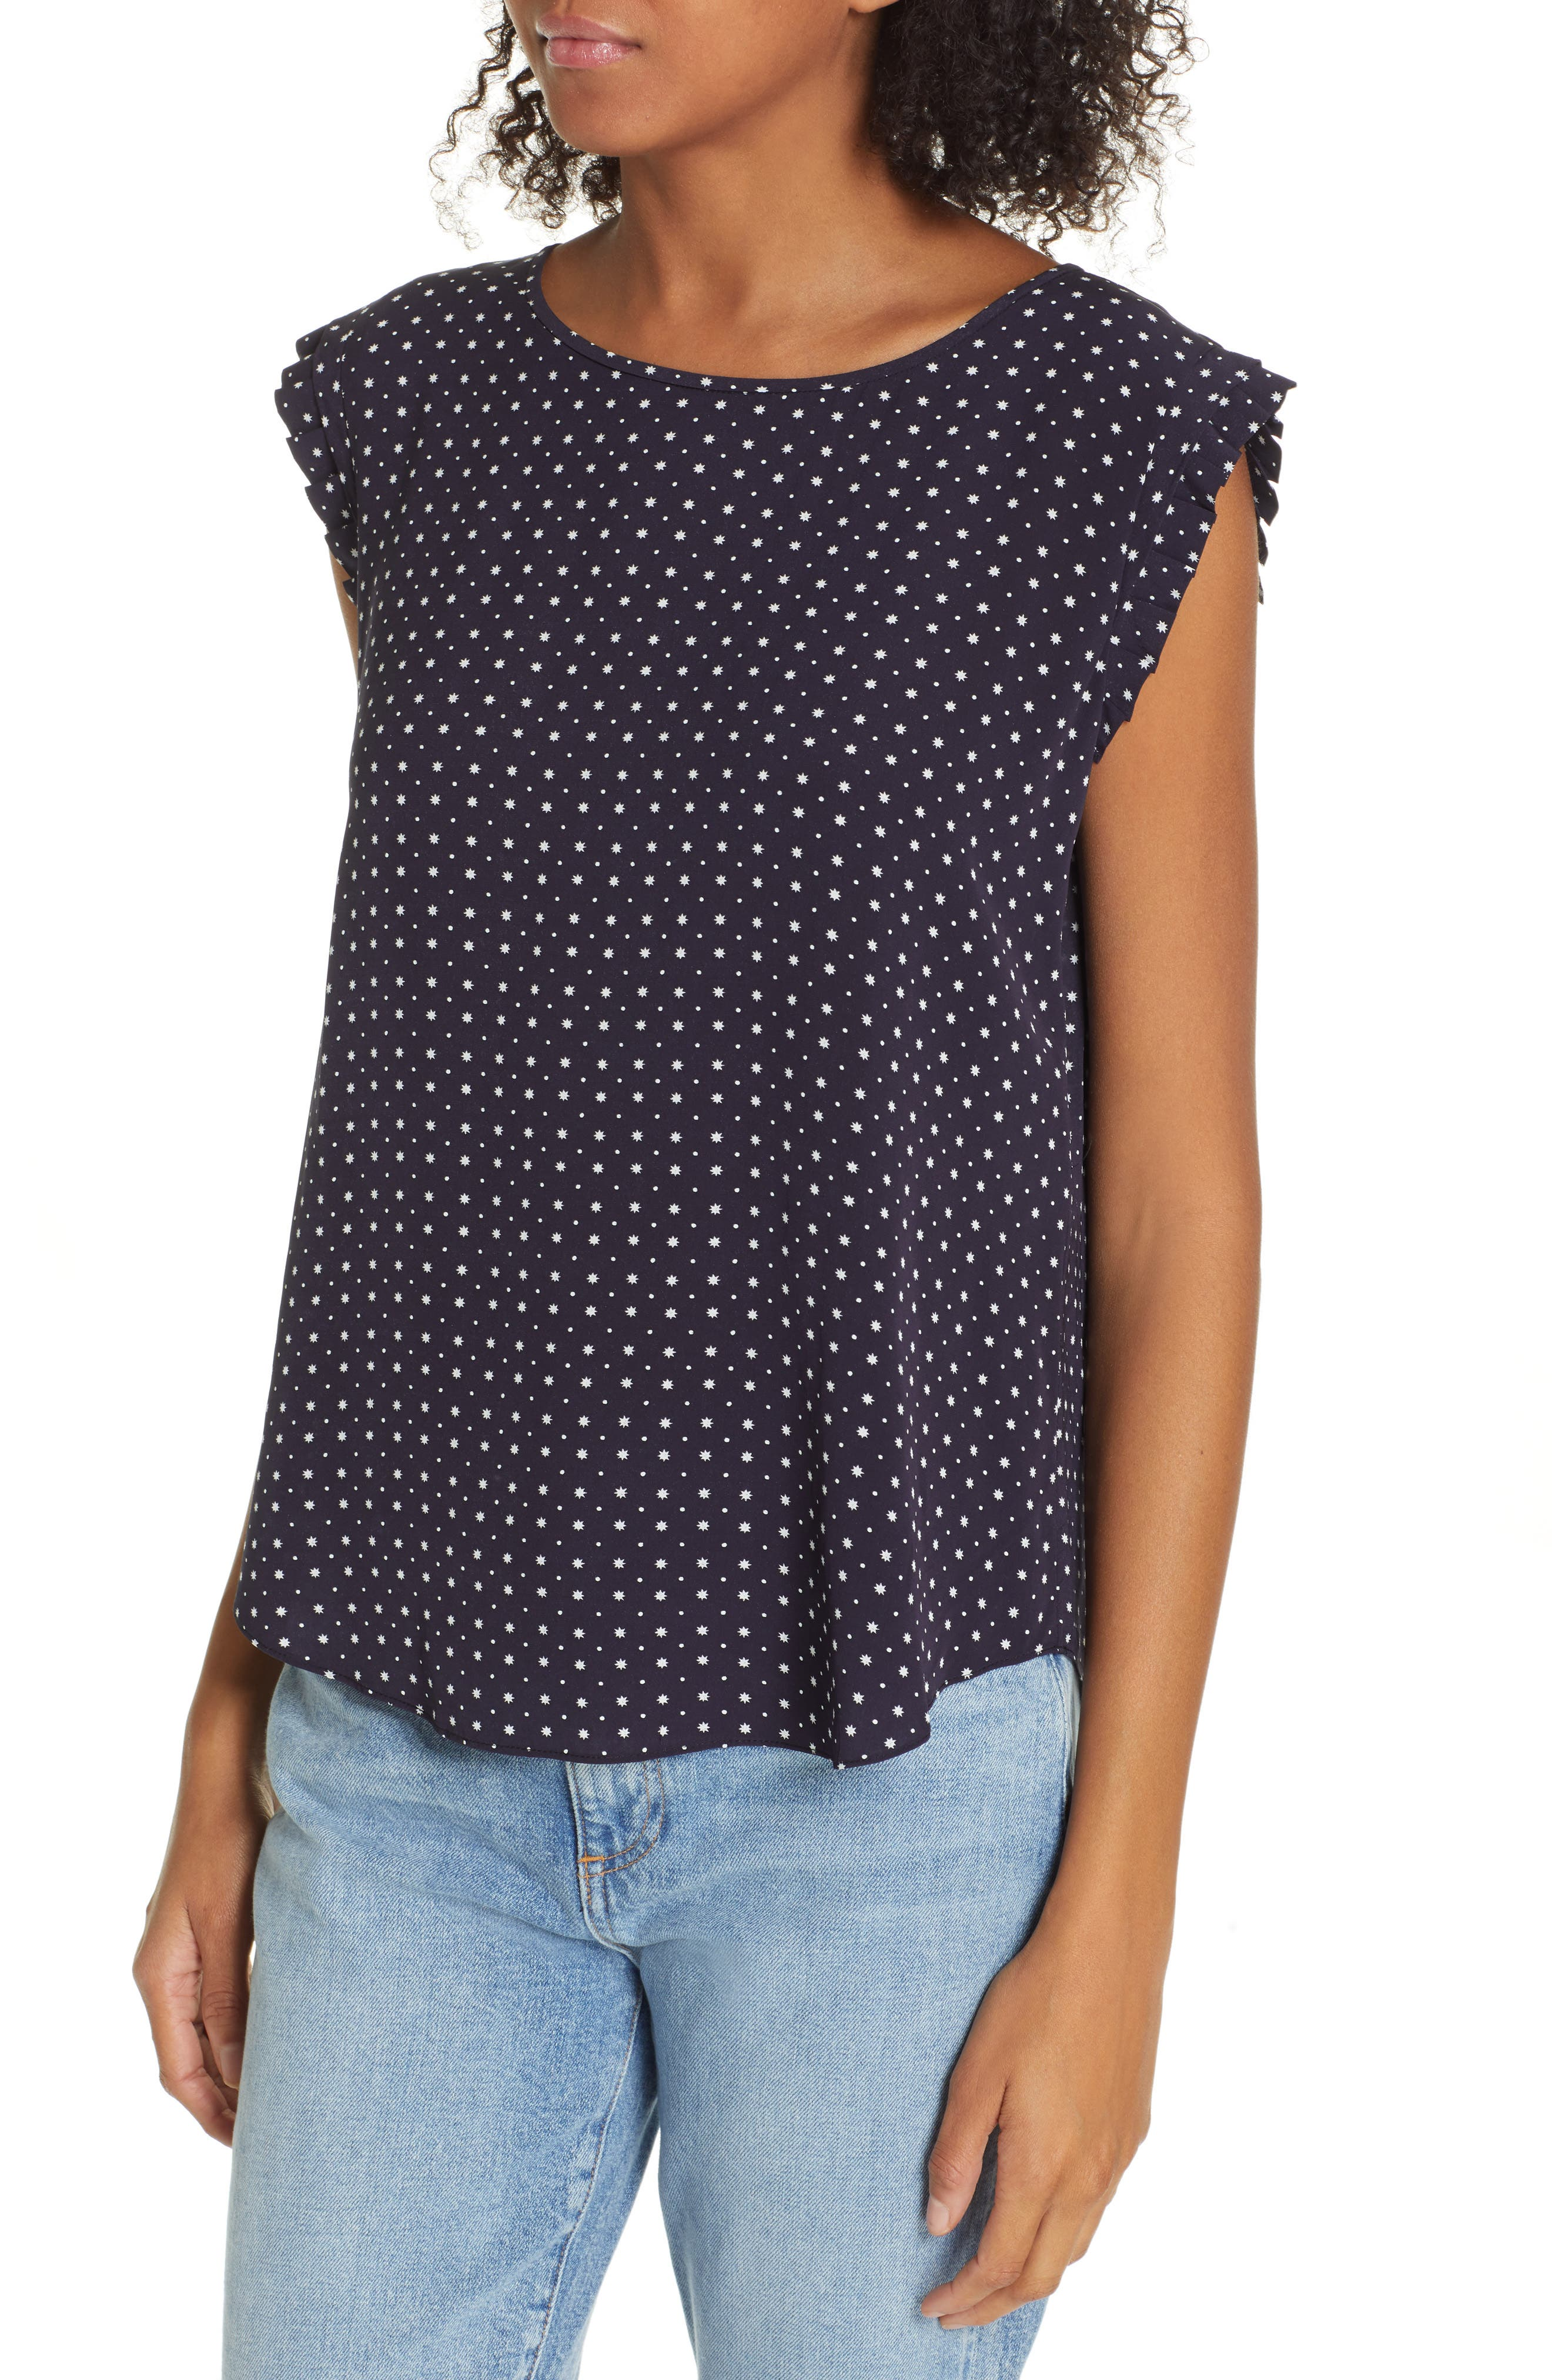 JOIE, Laurelle Print Woven Top, Alternate thumbnail 4, color, 410